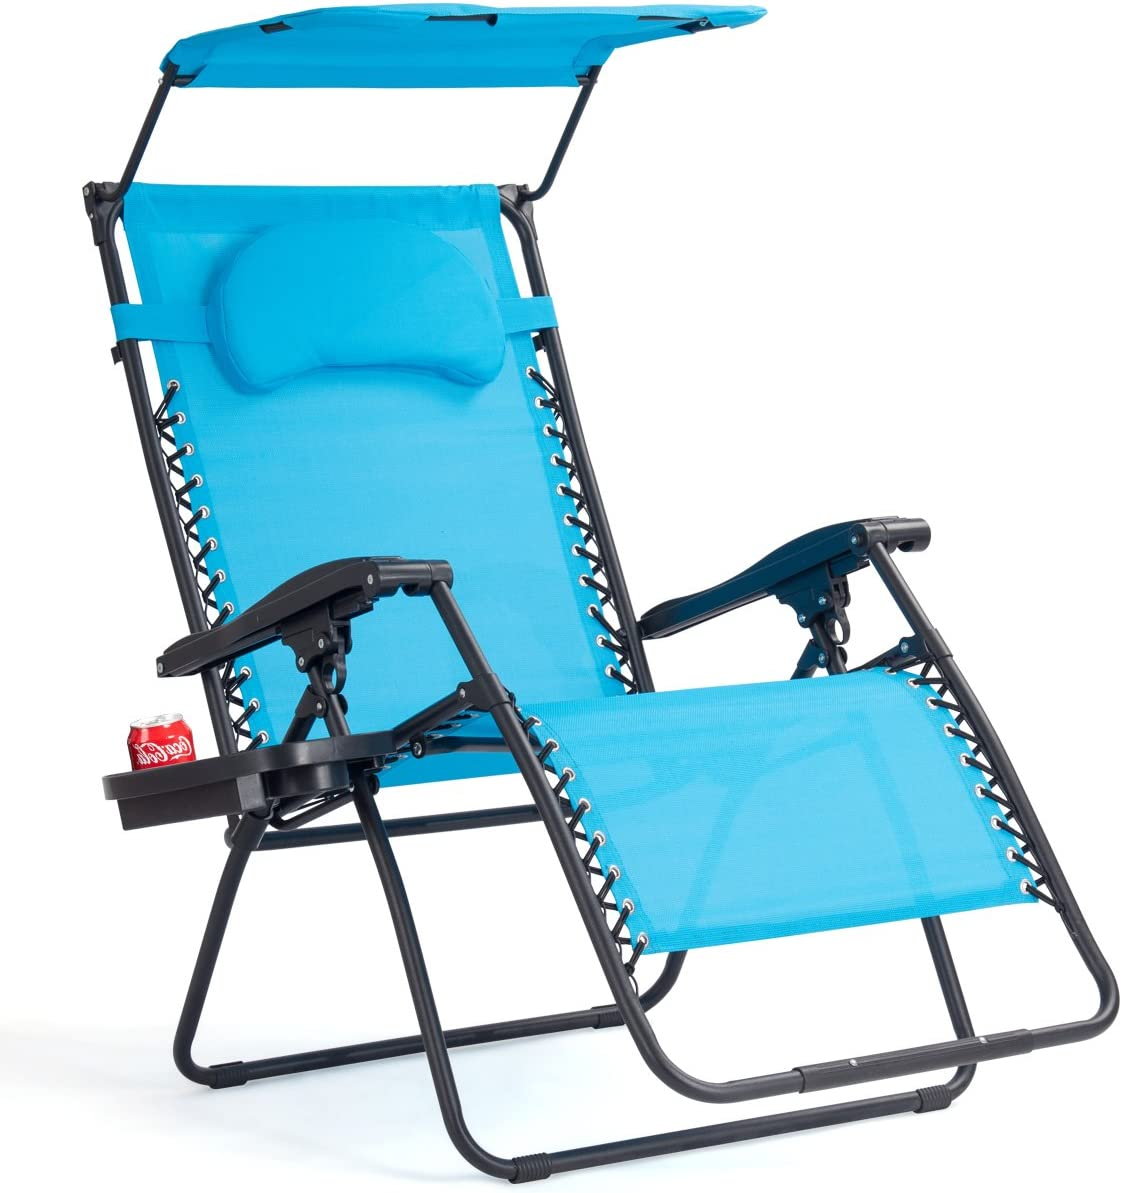 Goplus Folding Zero Gravity Lounge Chair Wide Recliner for Outdoor Beach Patio Pool w Shade Canopy Blue Zero Gravity Chair